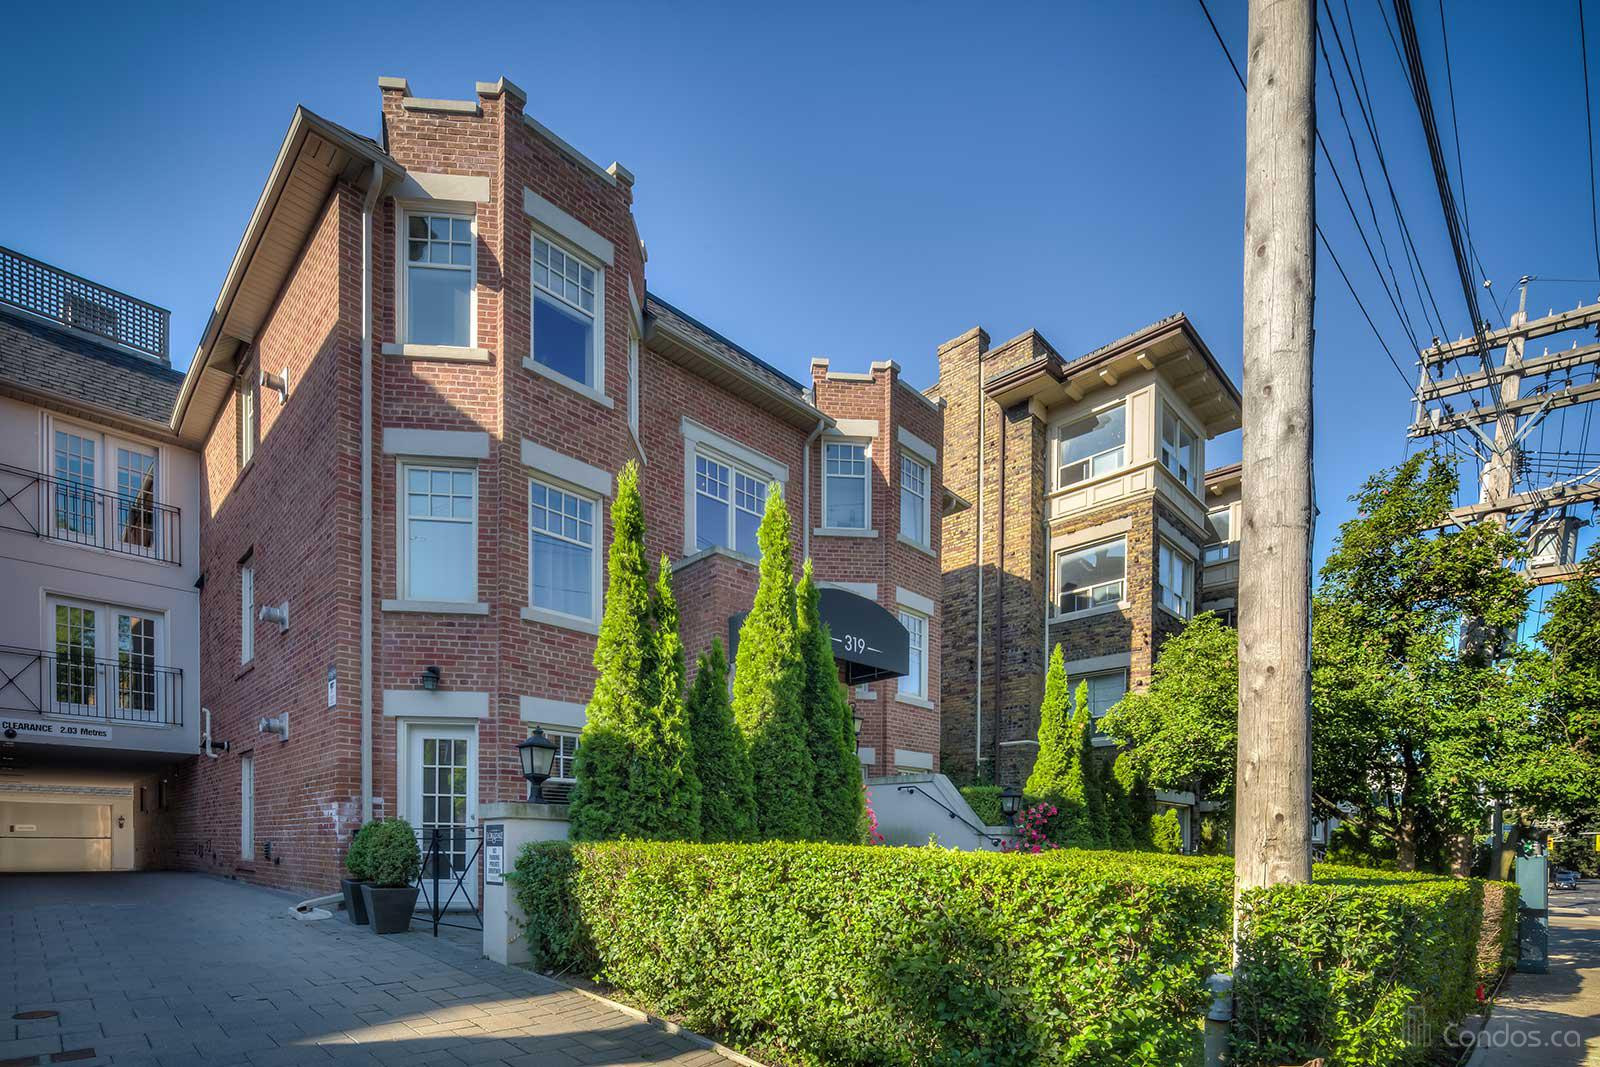 Condominiums Of Forest Hill Village at 317 Lonsdale Rd, Toronto 1